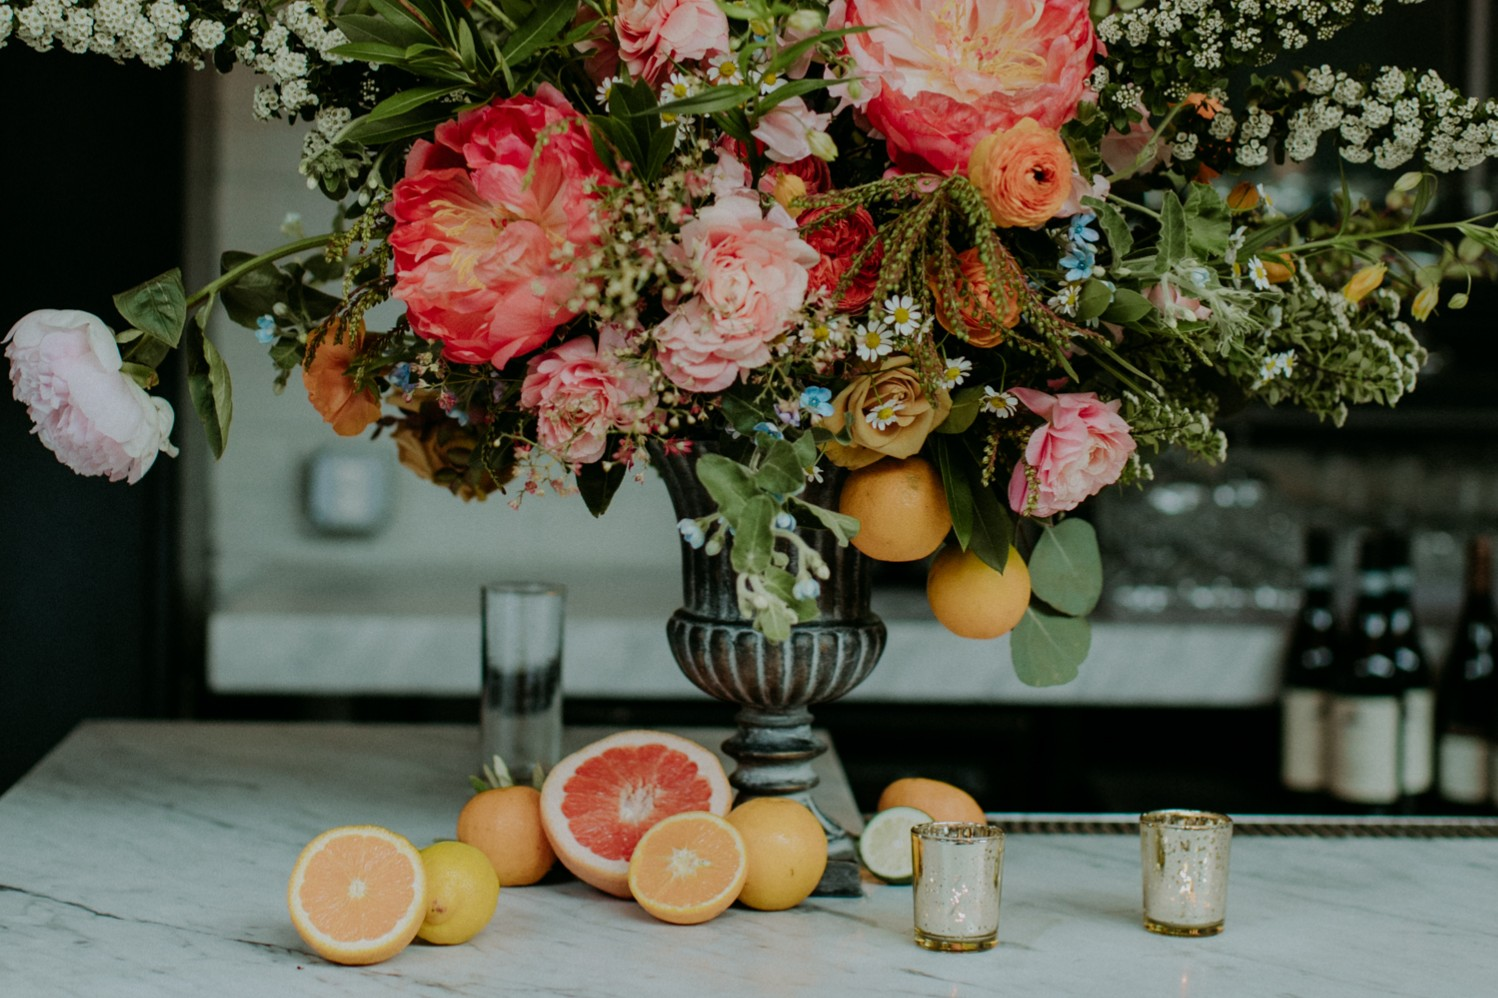 martha stewart weddings - 6 Signs That a Vendor Is over-promising